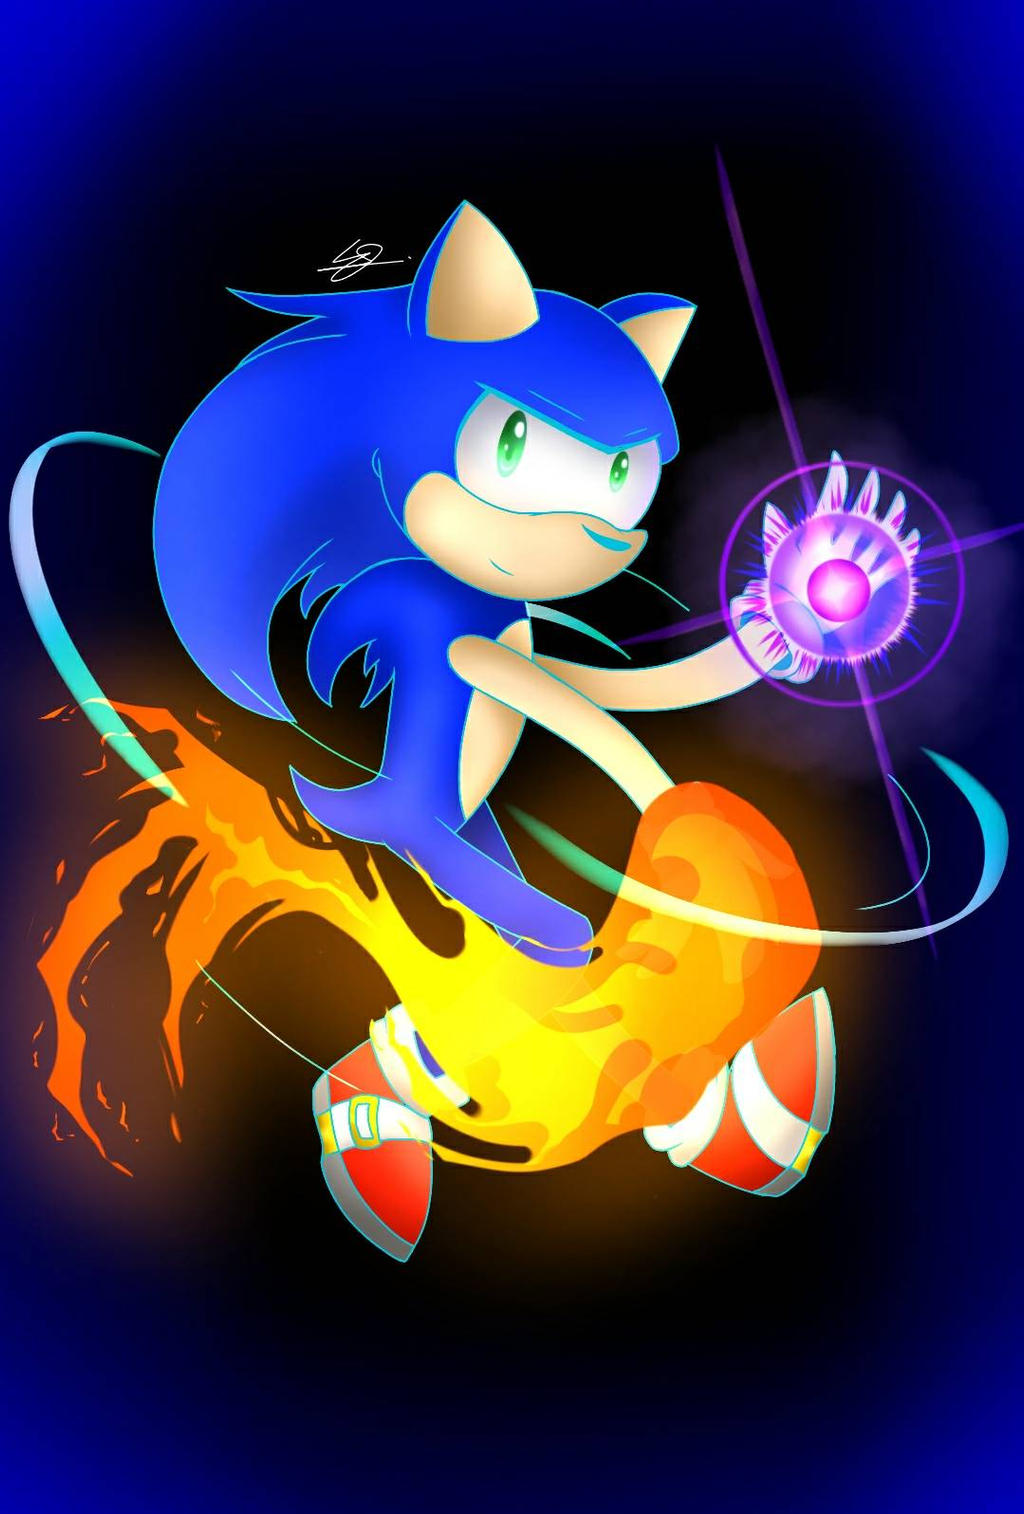 Sonic: Fire and Darkness by SuhaiCo